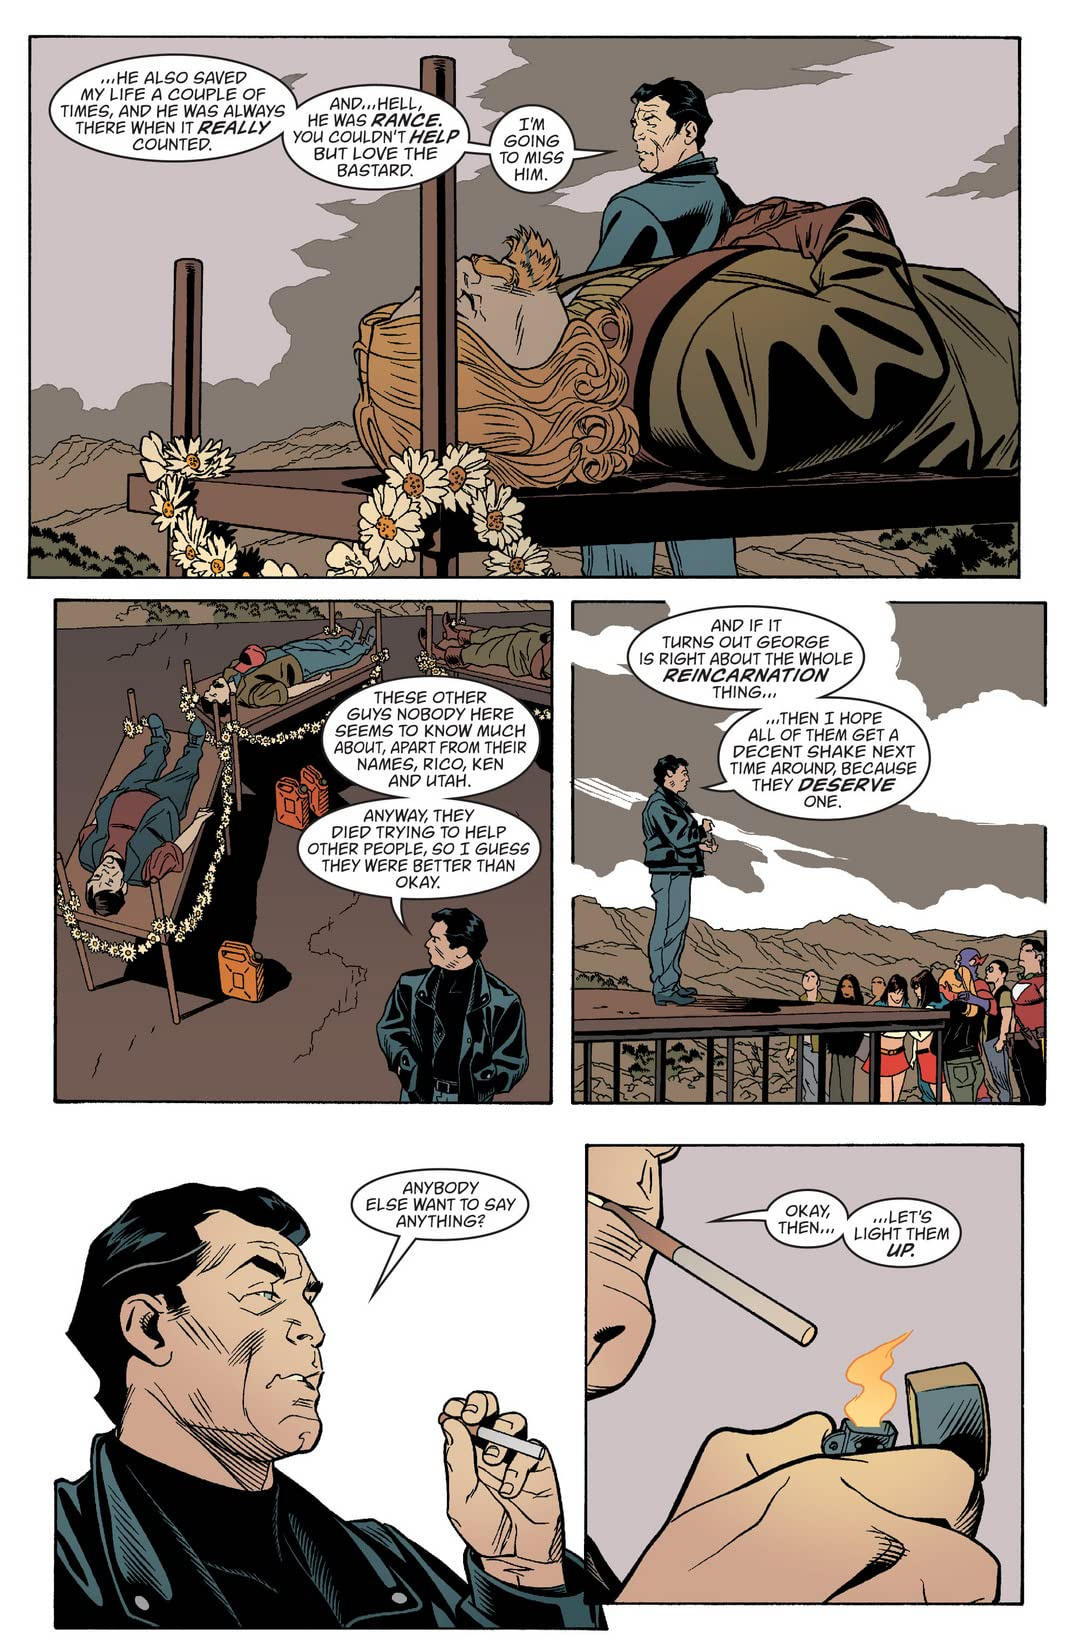 Tom Strong and the Planet of Peril #5 (of 6)